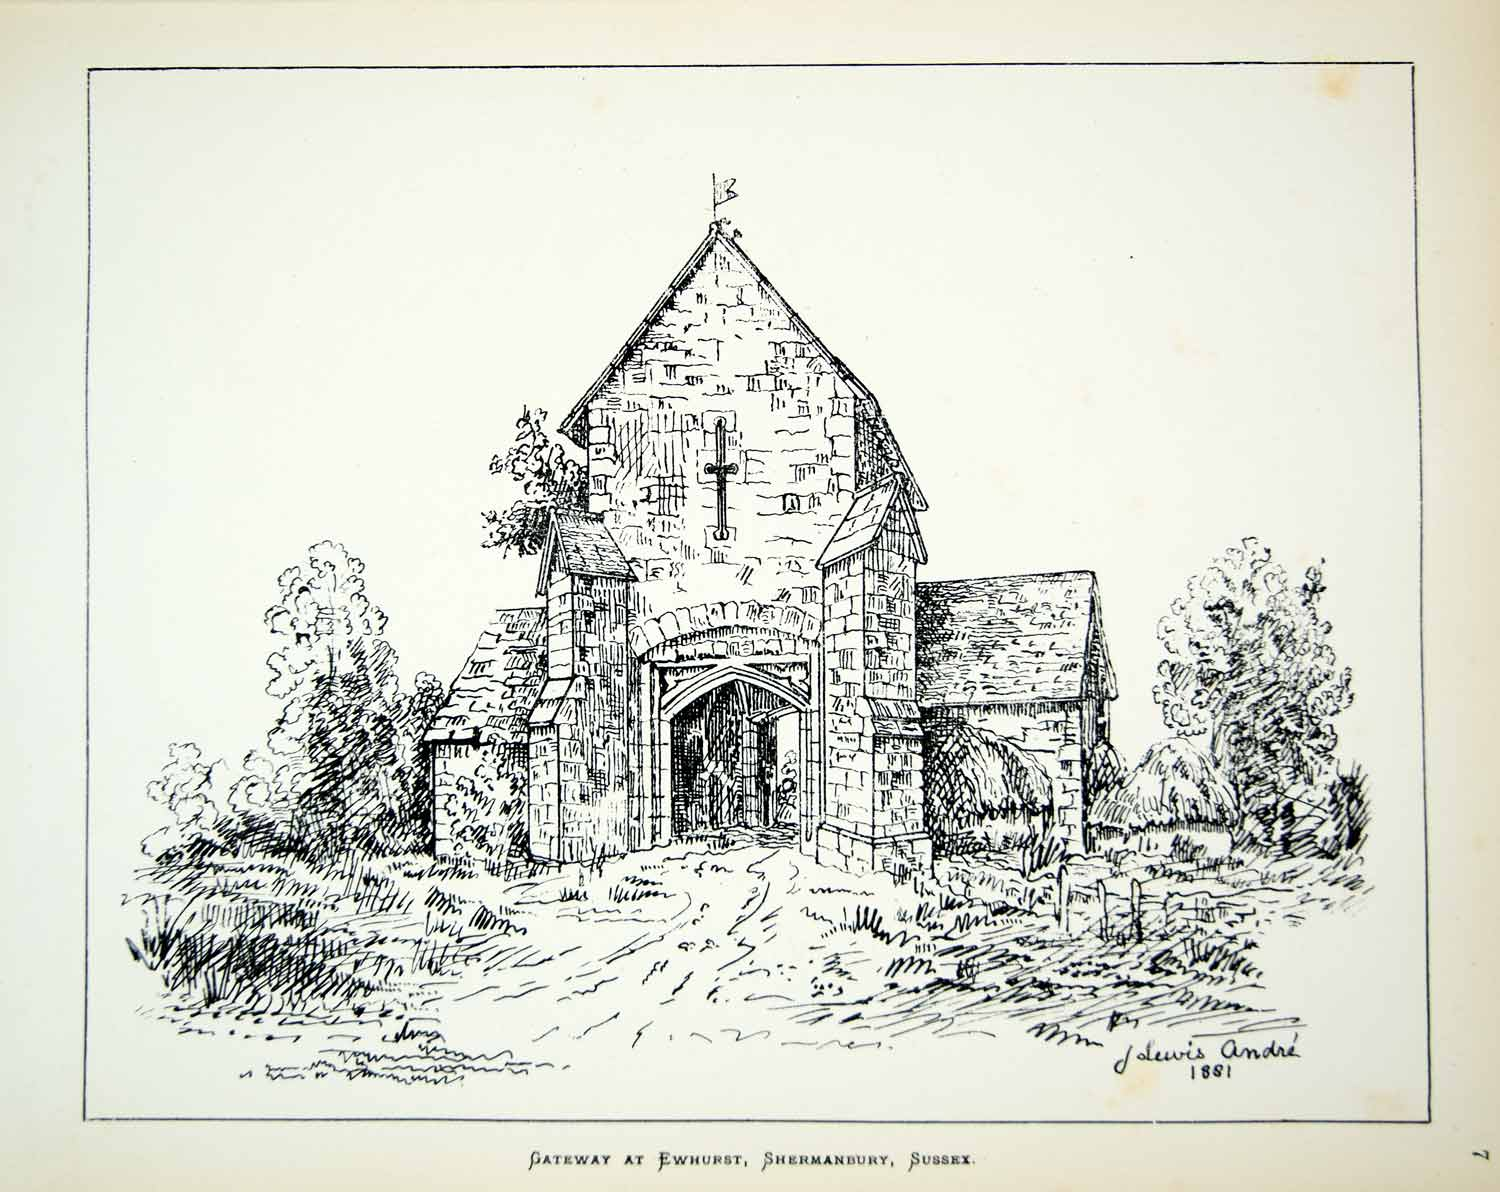 1881 Lithograph J Lewis Andre Art Gate Ewhurst Manor Shermanbury England UK ZZ18